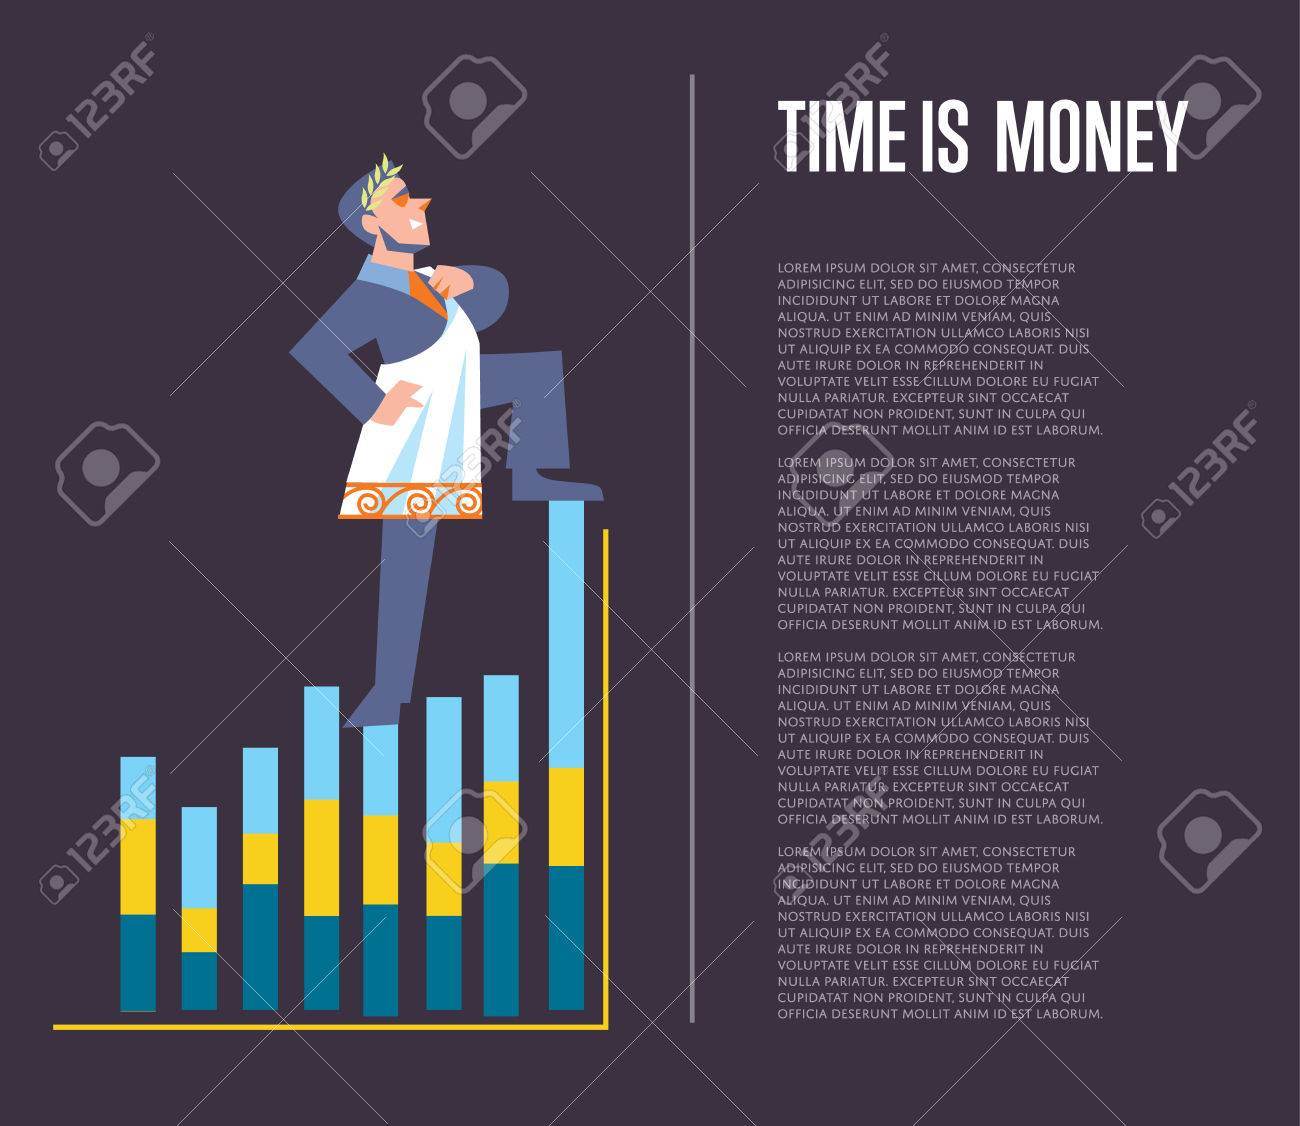 Time Is Money Banner With Businessman In Roman Toga And Laurel Wreath Standing On Graph